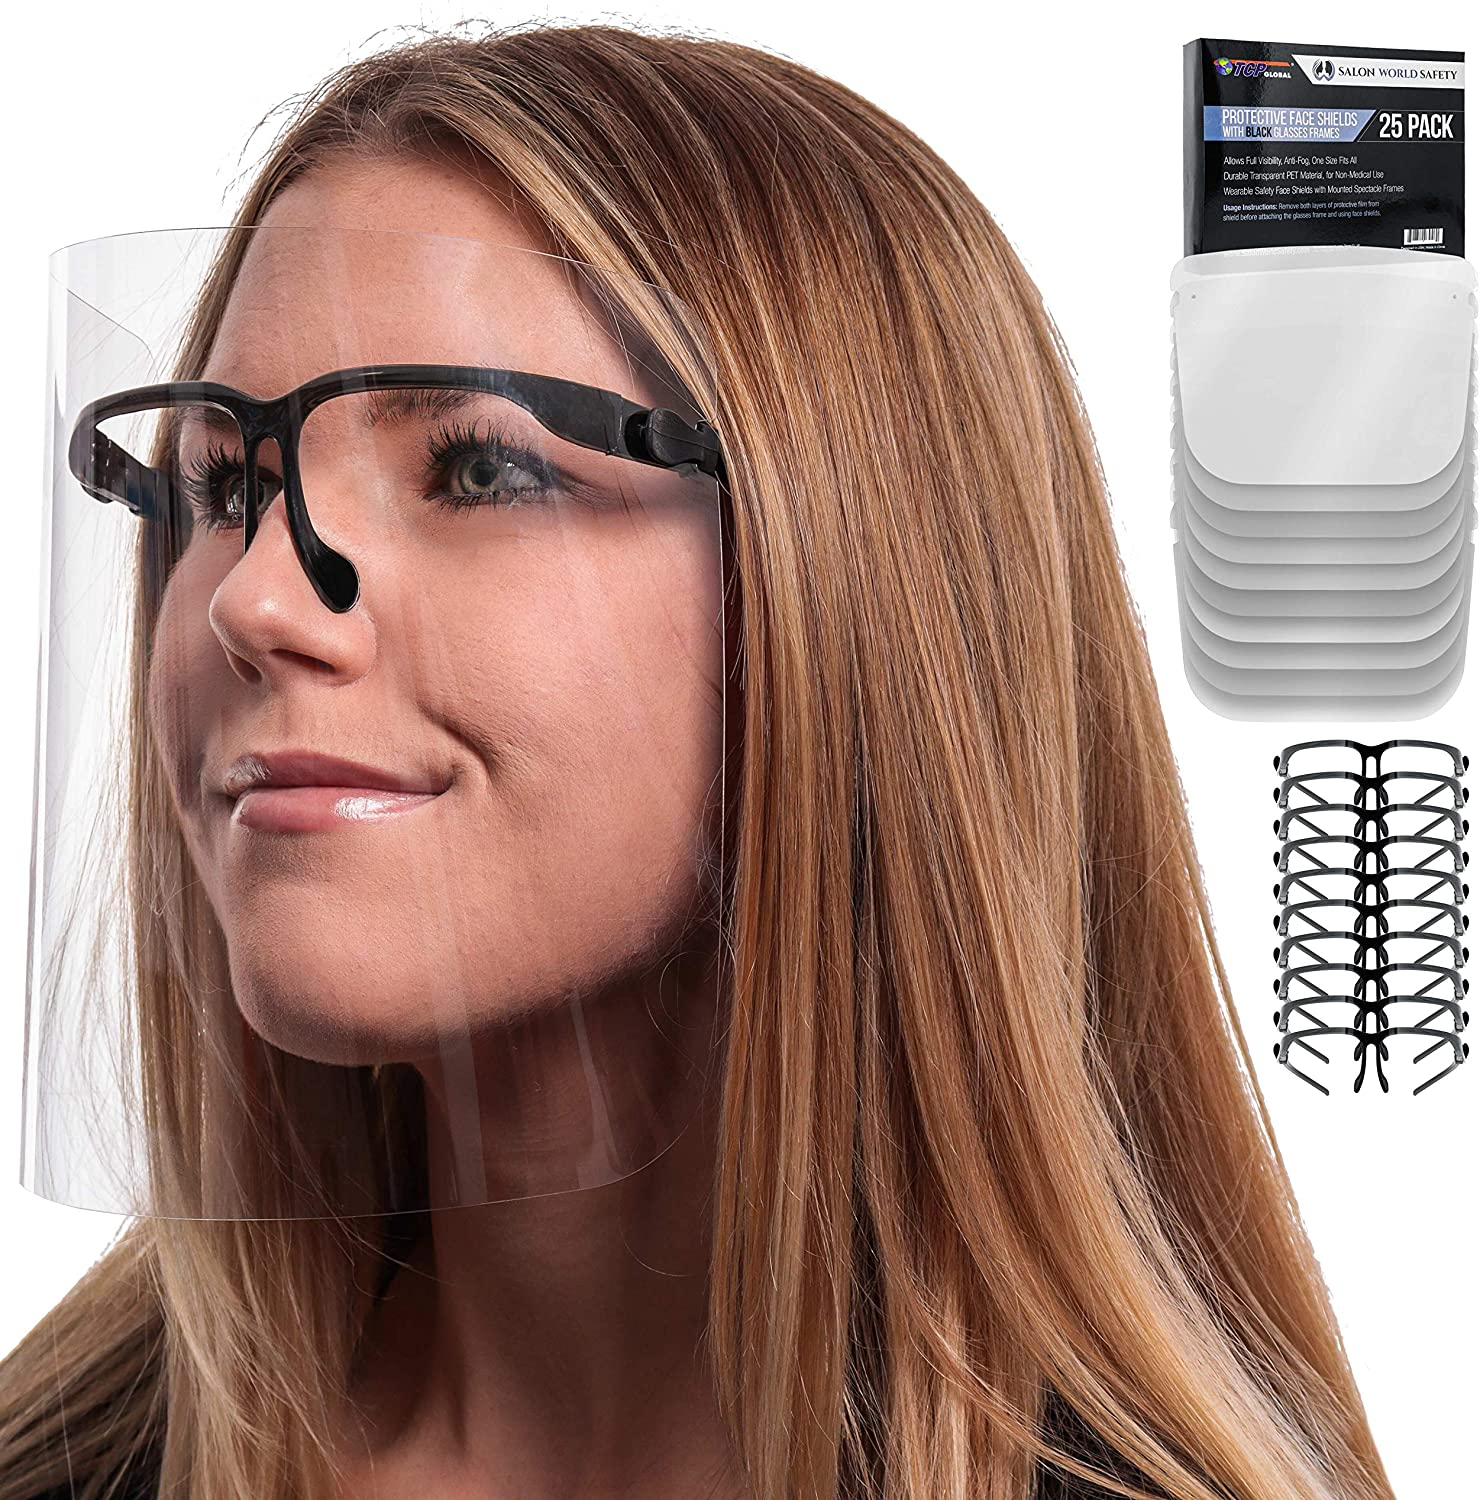 TCP Global 25PCS Safety Face Shields $24.96 Coupon